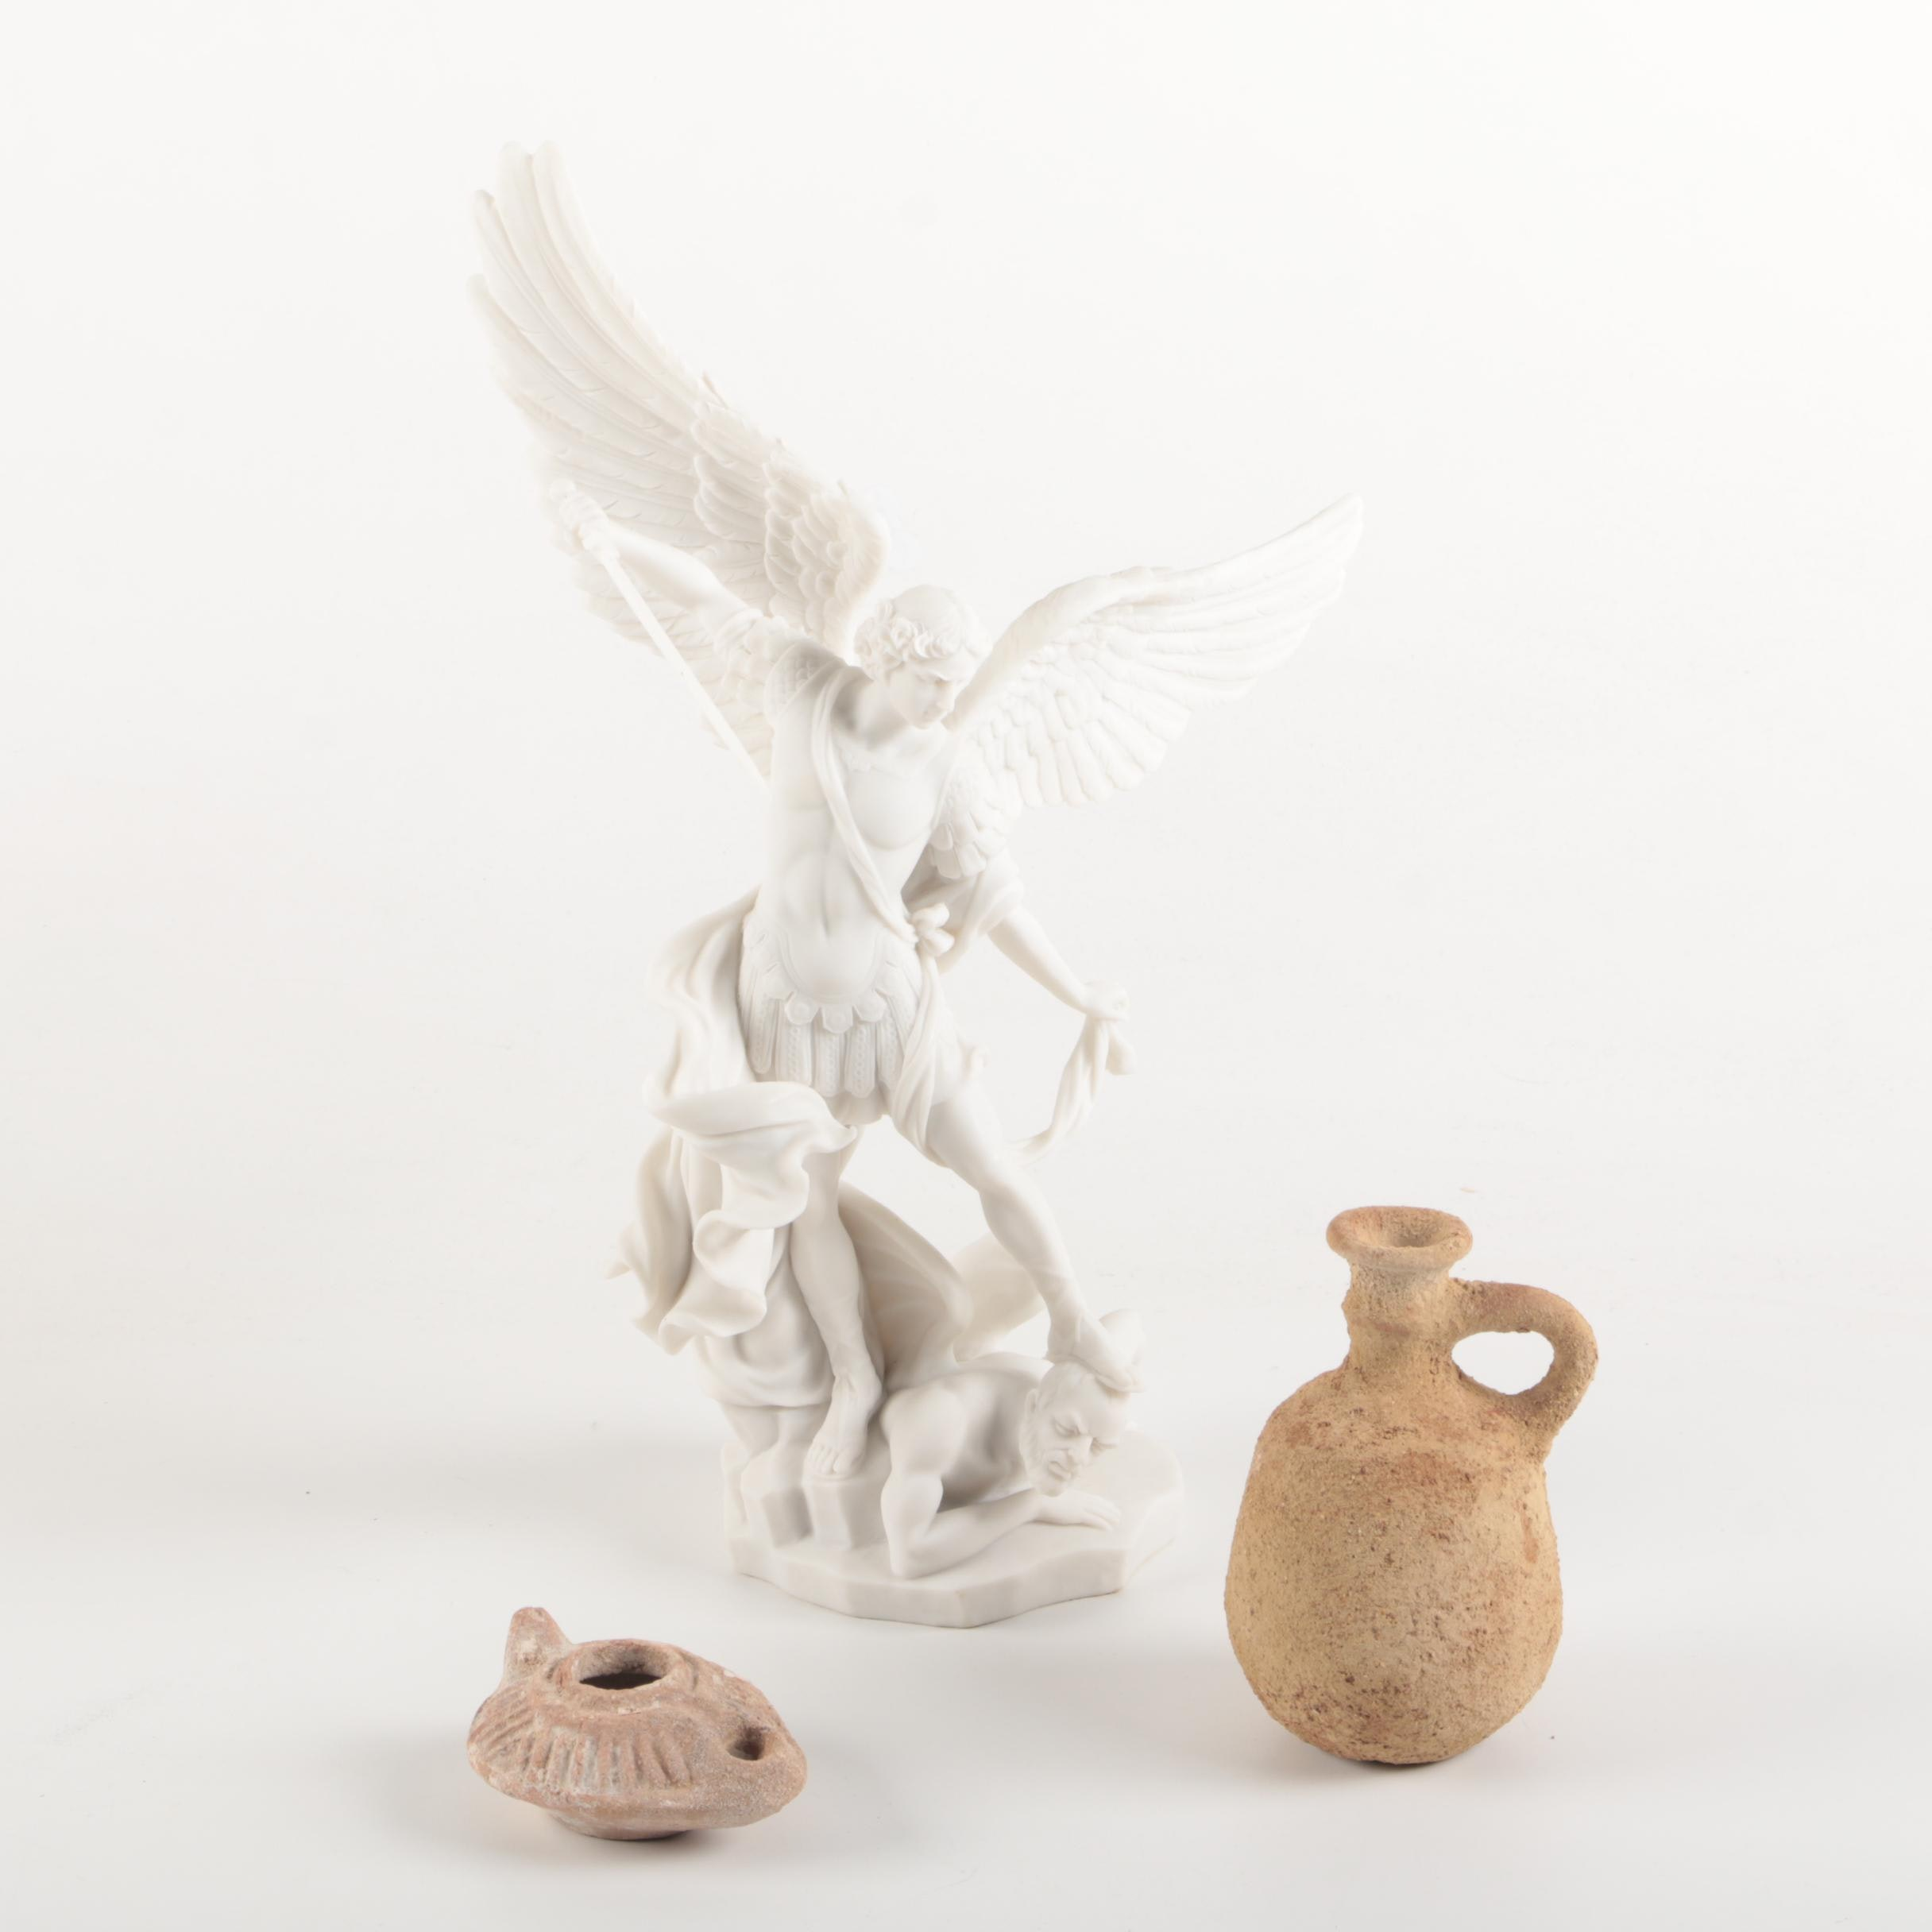 The Archangel Michael Figurine and Other Ceramic Decor